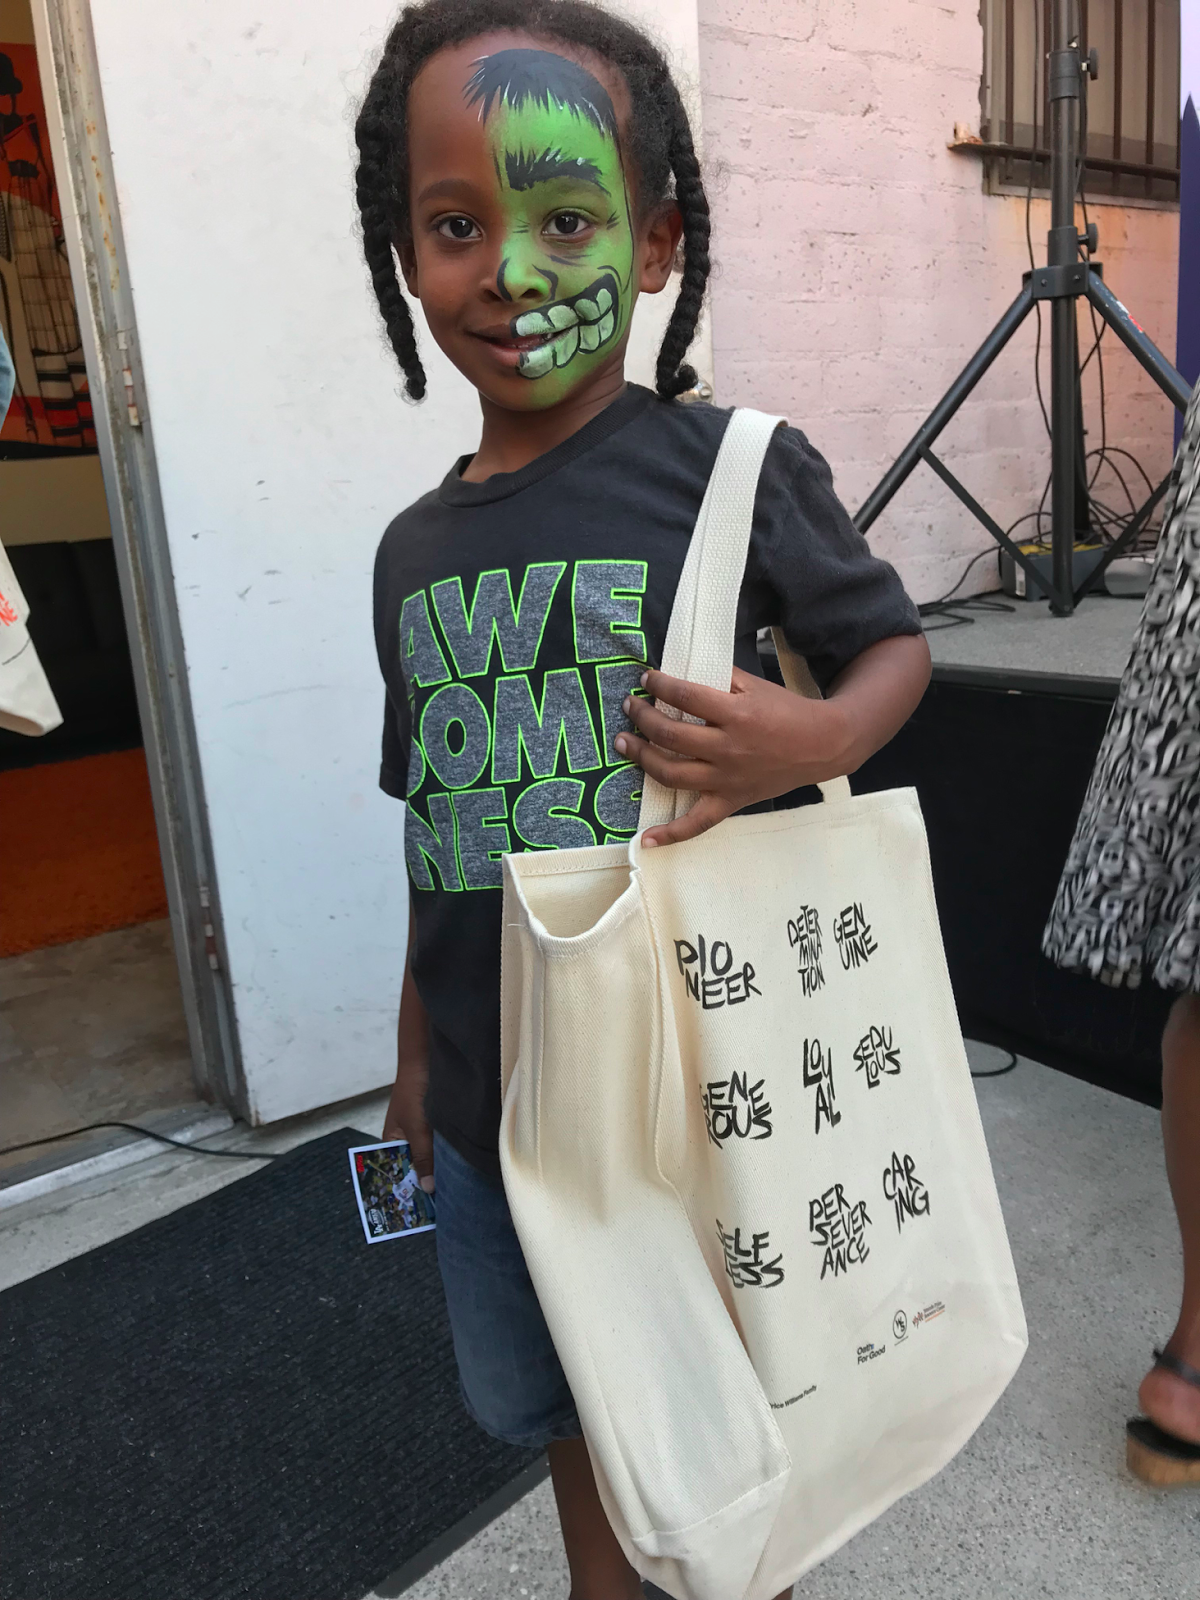 Girl wearing facepaint holds a bag.